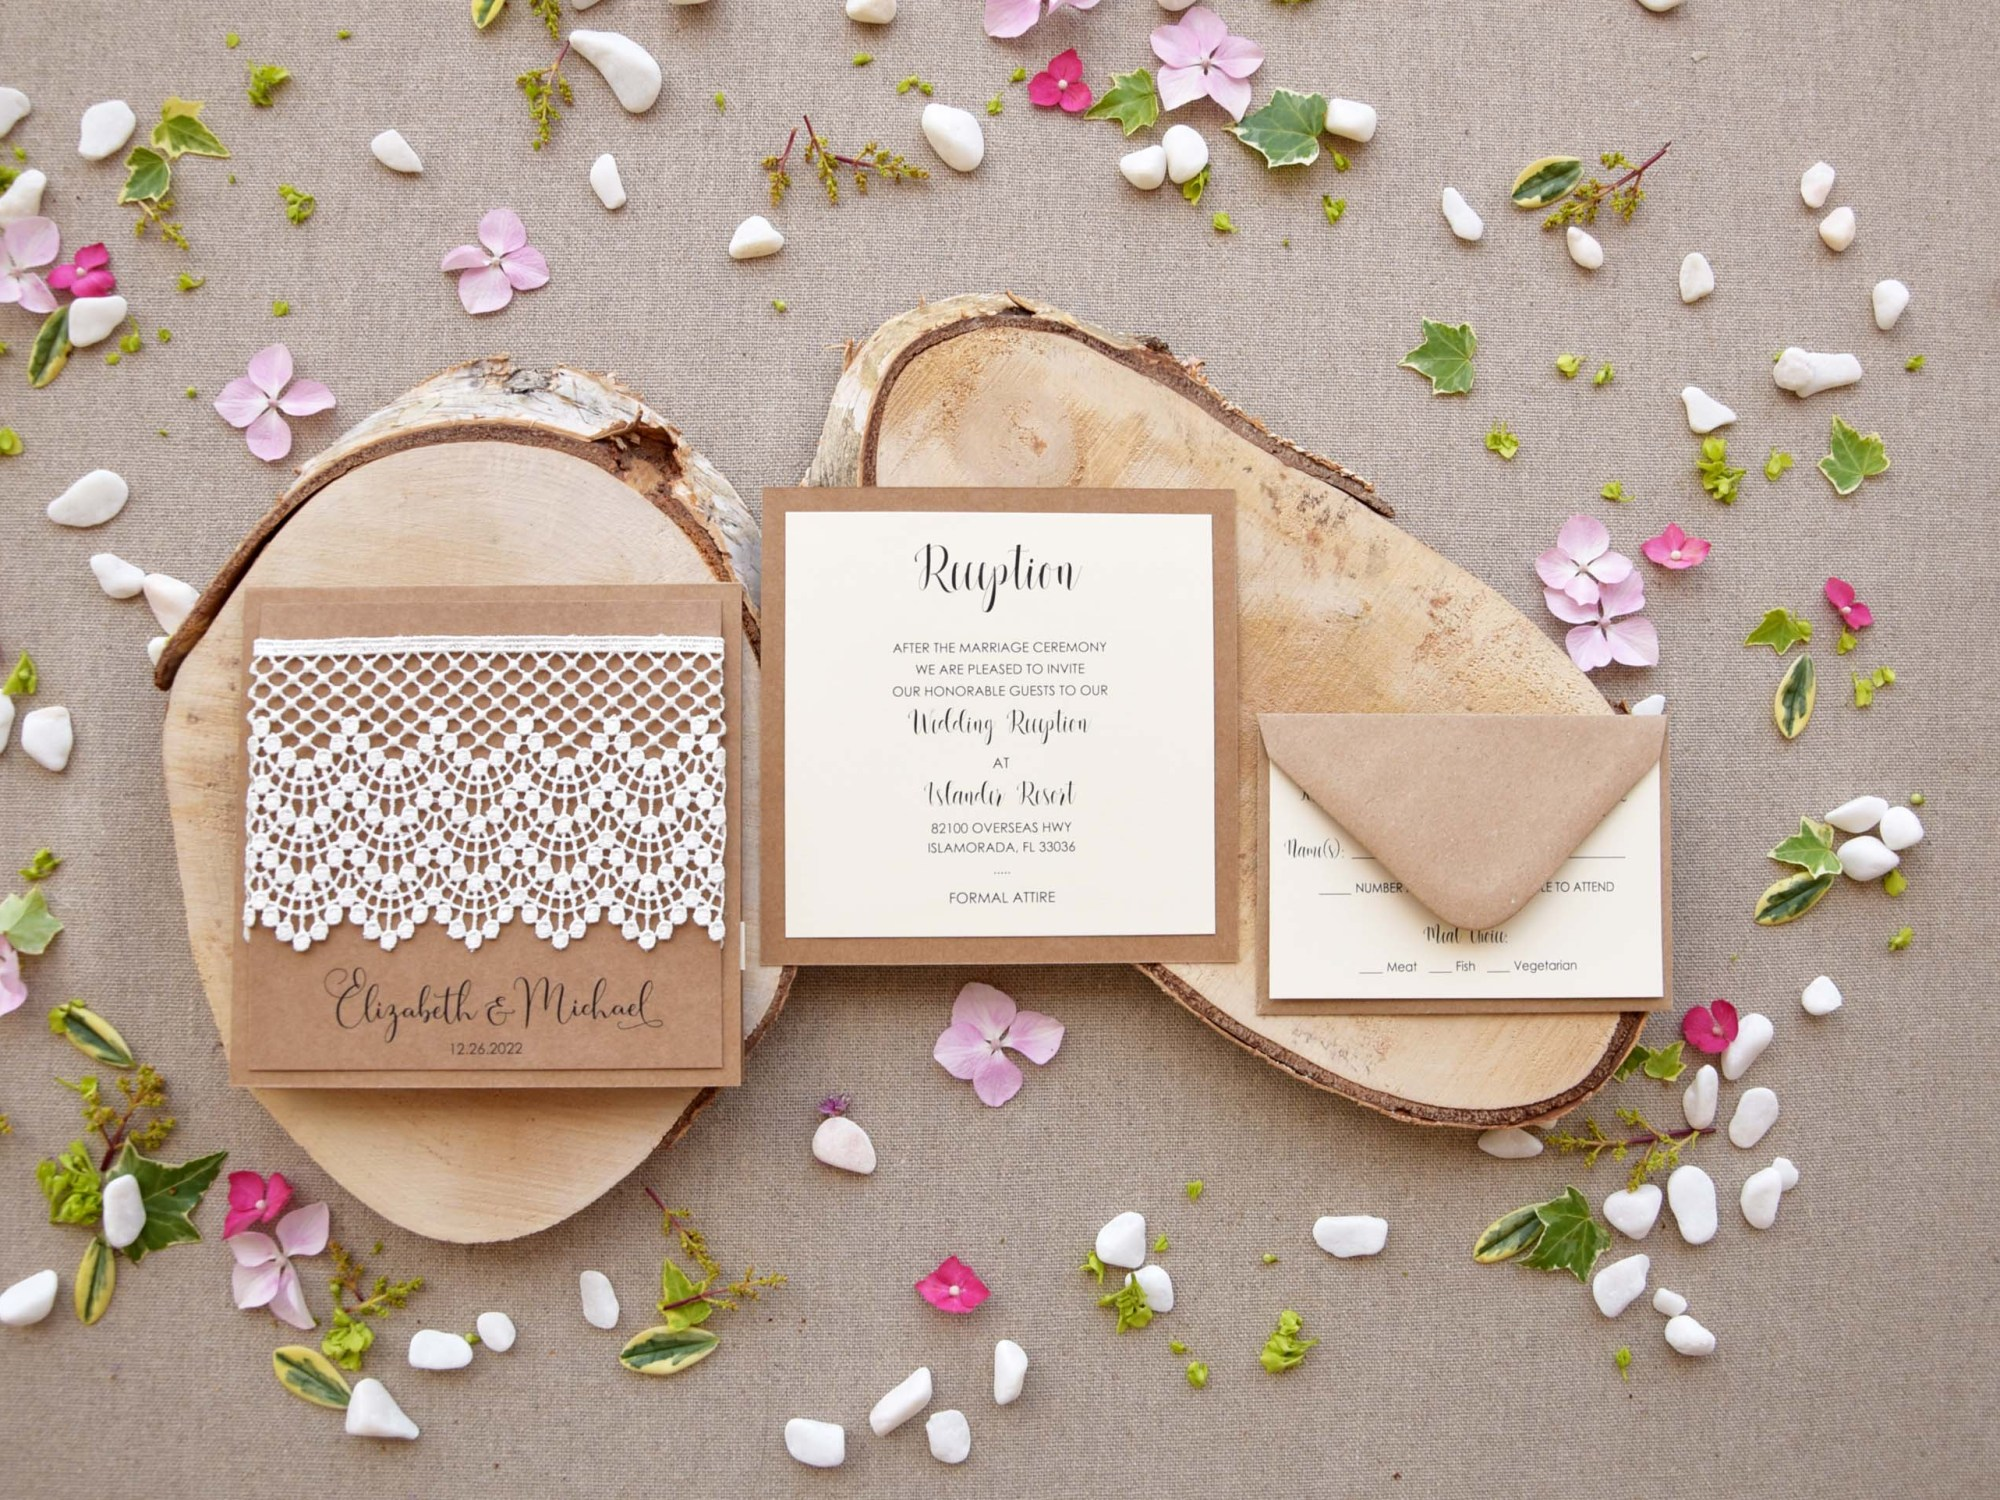 Rustic Lace Wedding Invitation Kits